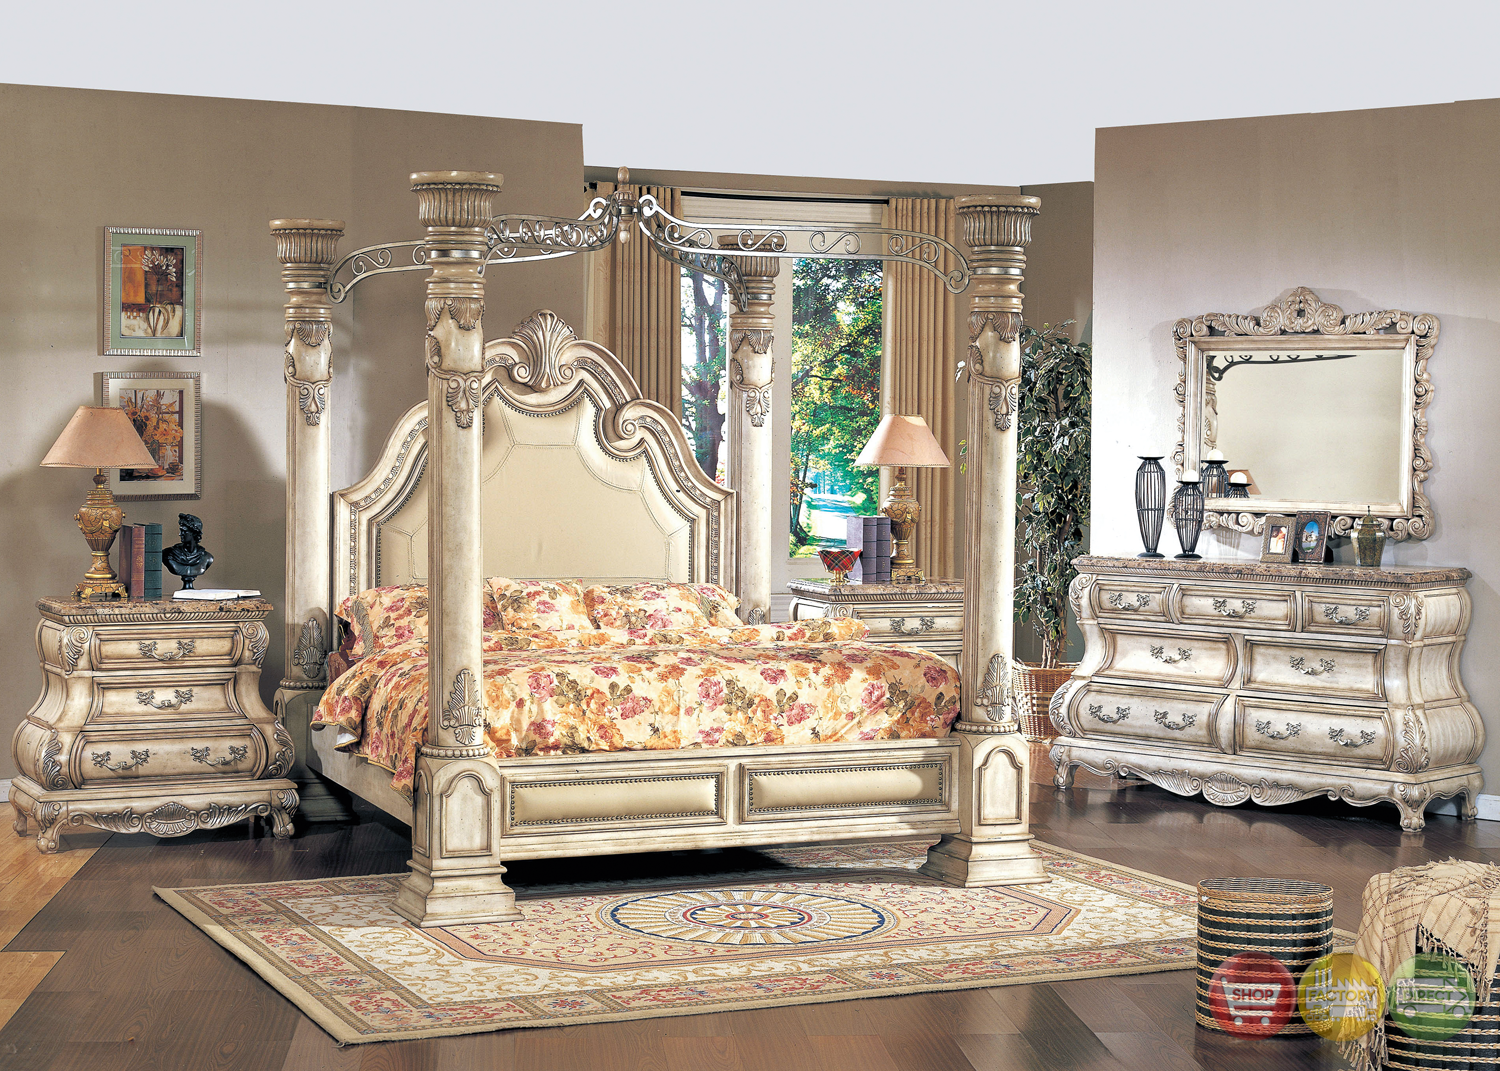 Antique white queen poster canopy bed victorian inspired bedroom furniture collection Home furniture victoria street